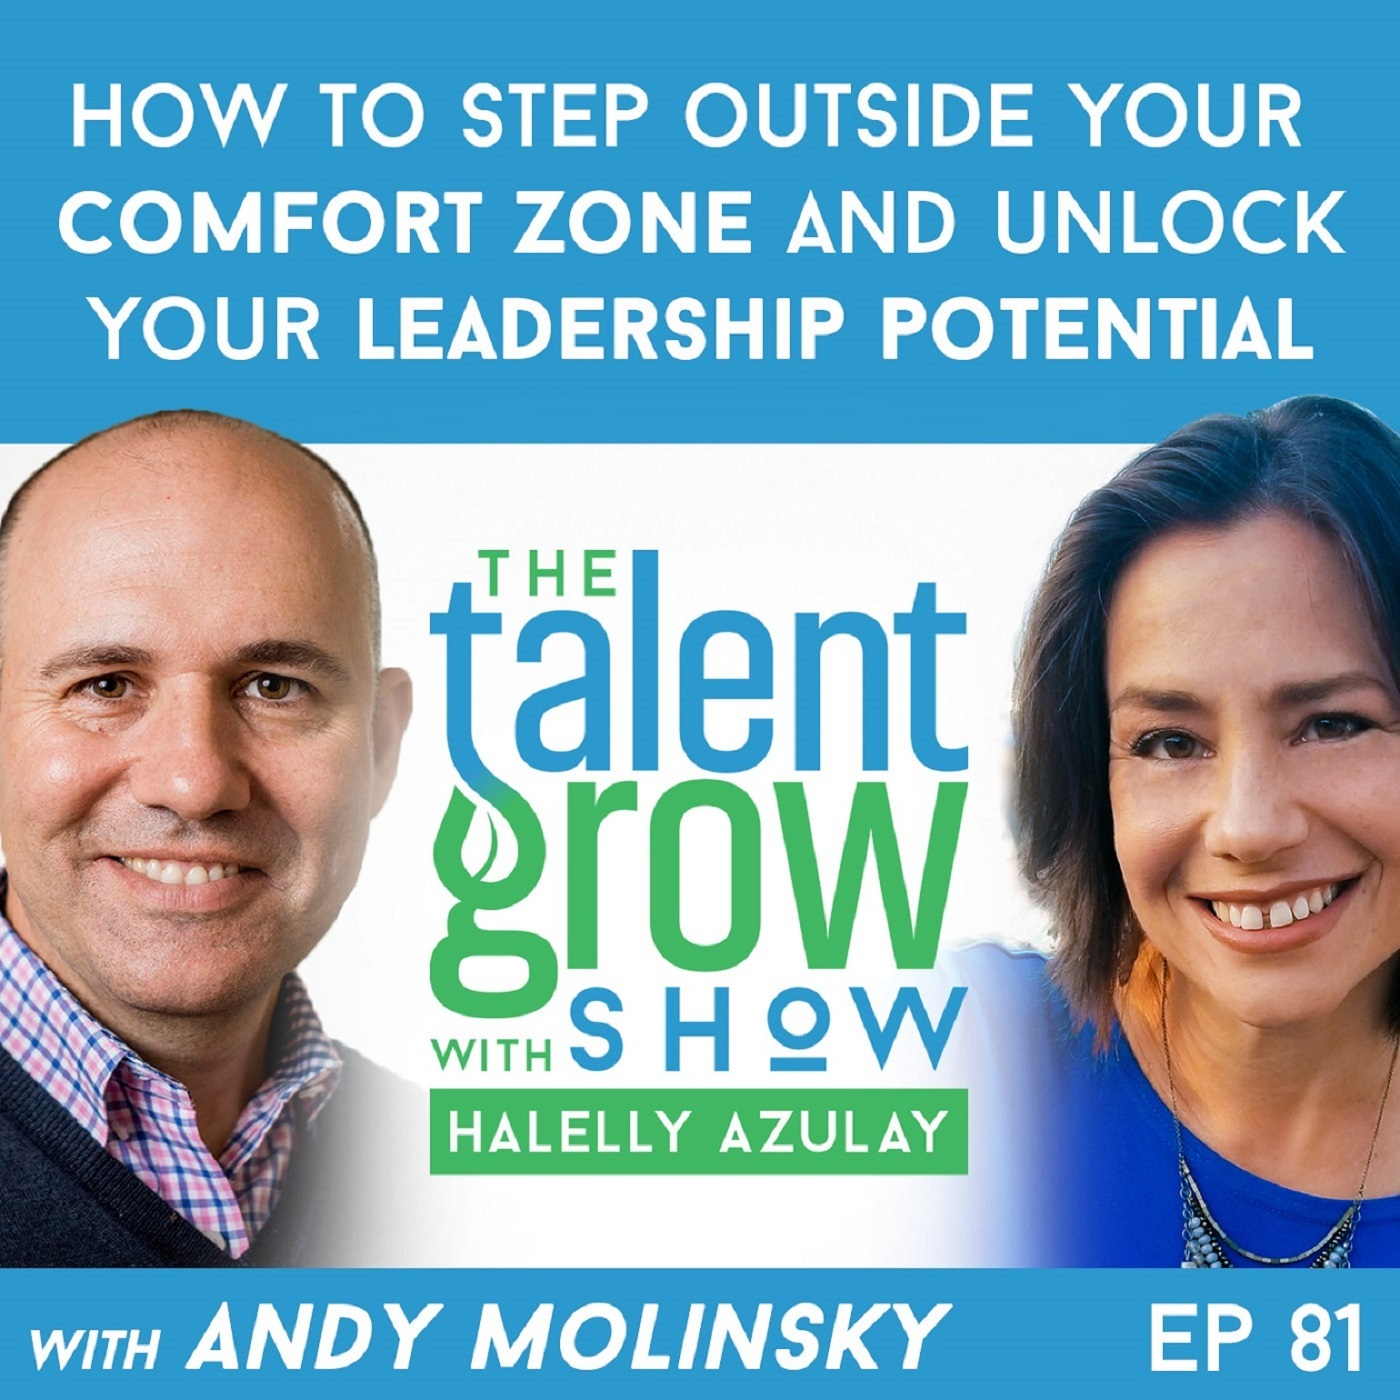 ep81 How to step outside your comfort zone and unlock your leadership potential with Andy Molinsky on the TalentGrow Show with Halelly Azulay